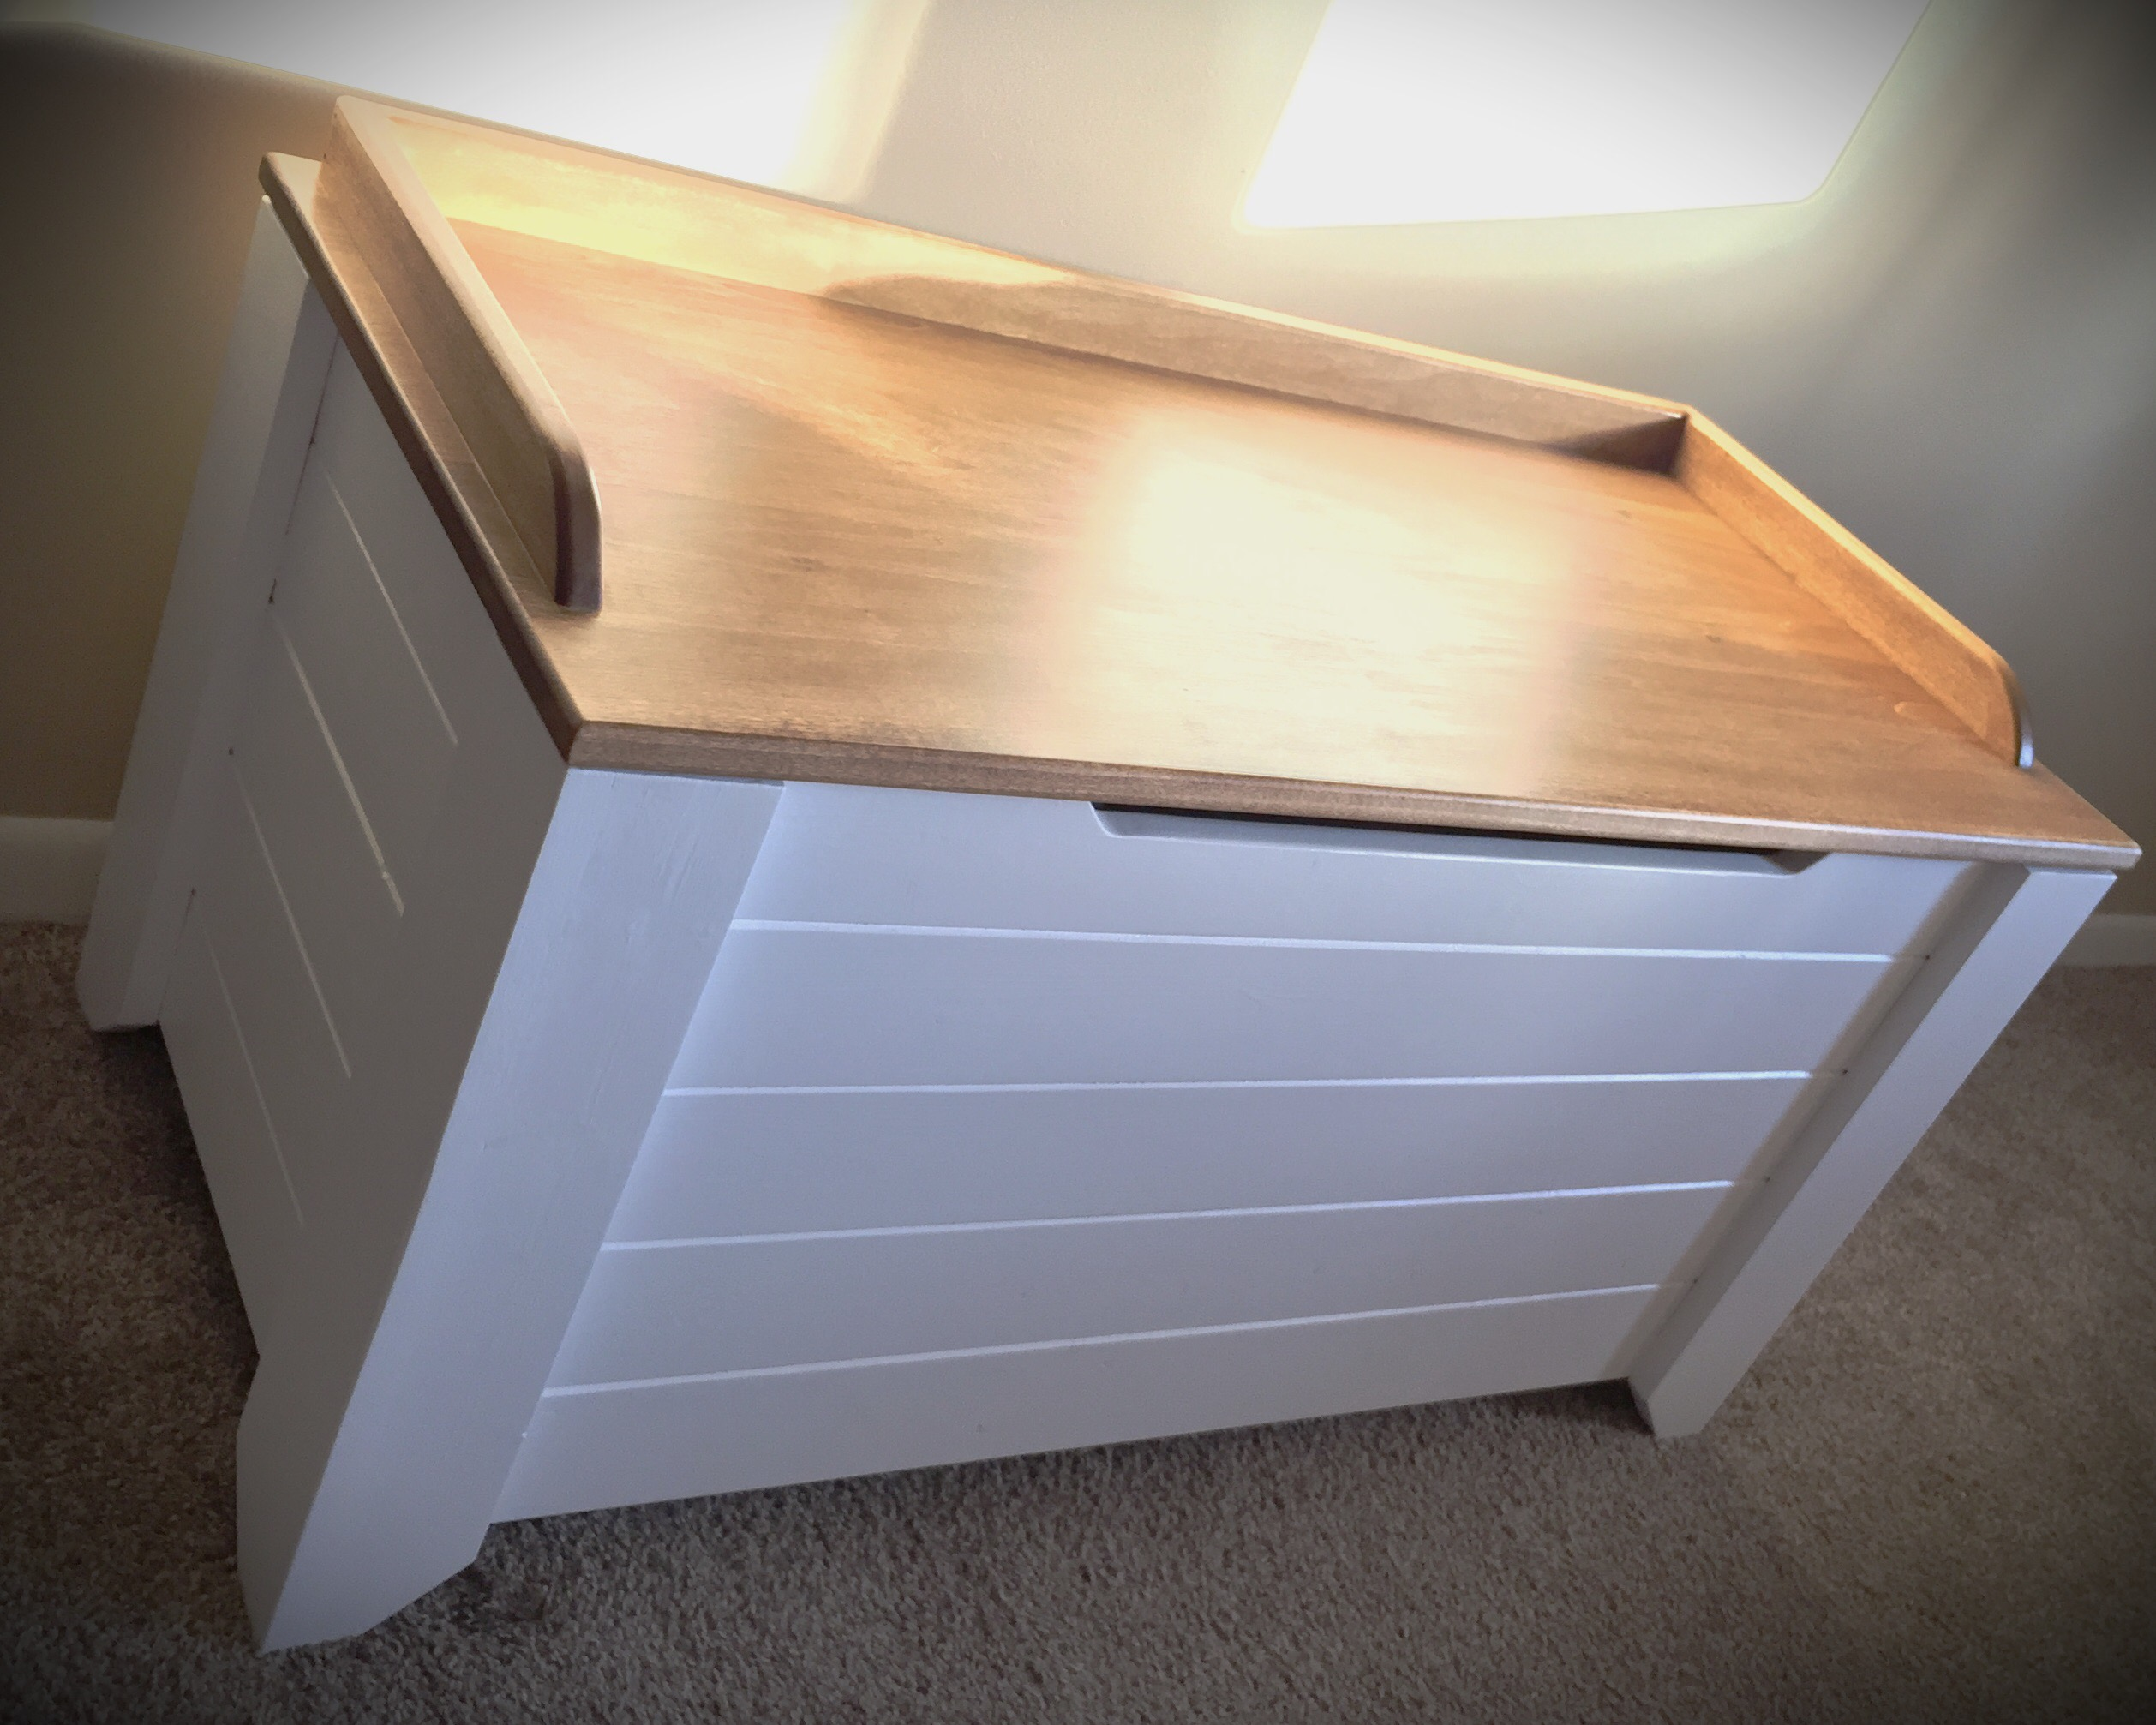 Ana White Farmhouse Style Toy Box Blanket Chest Diy Projects